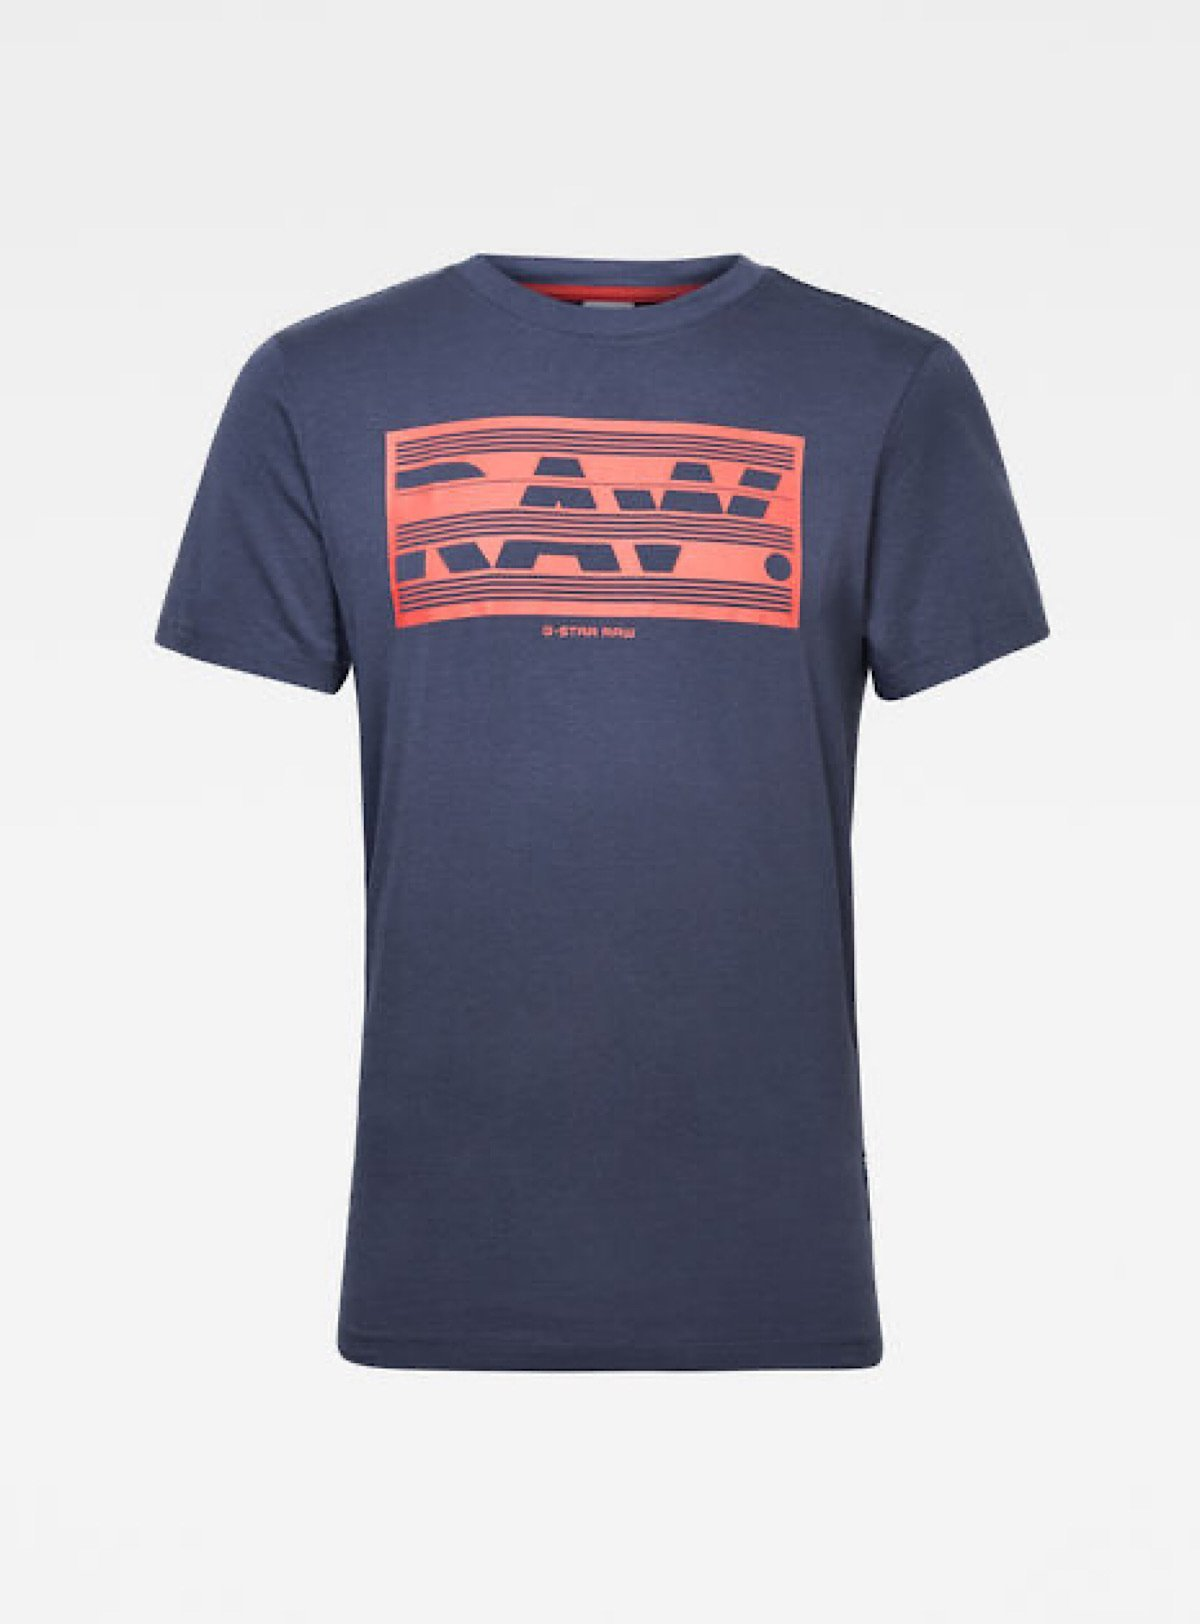 G-Star T-Shirt - Boxed Raw - Indigo And Red - D17106-336-857